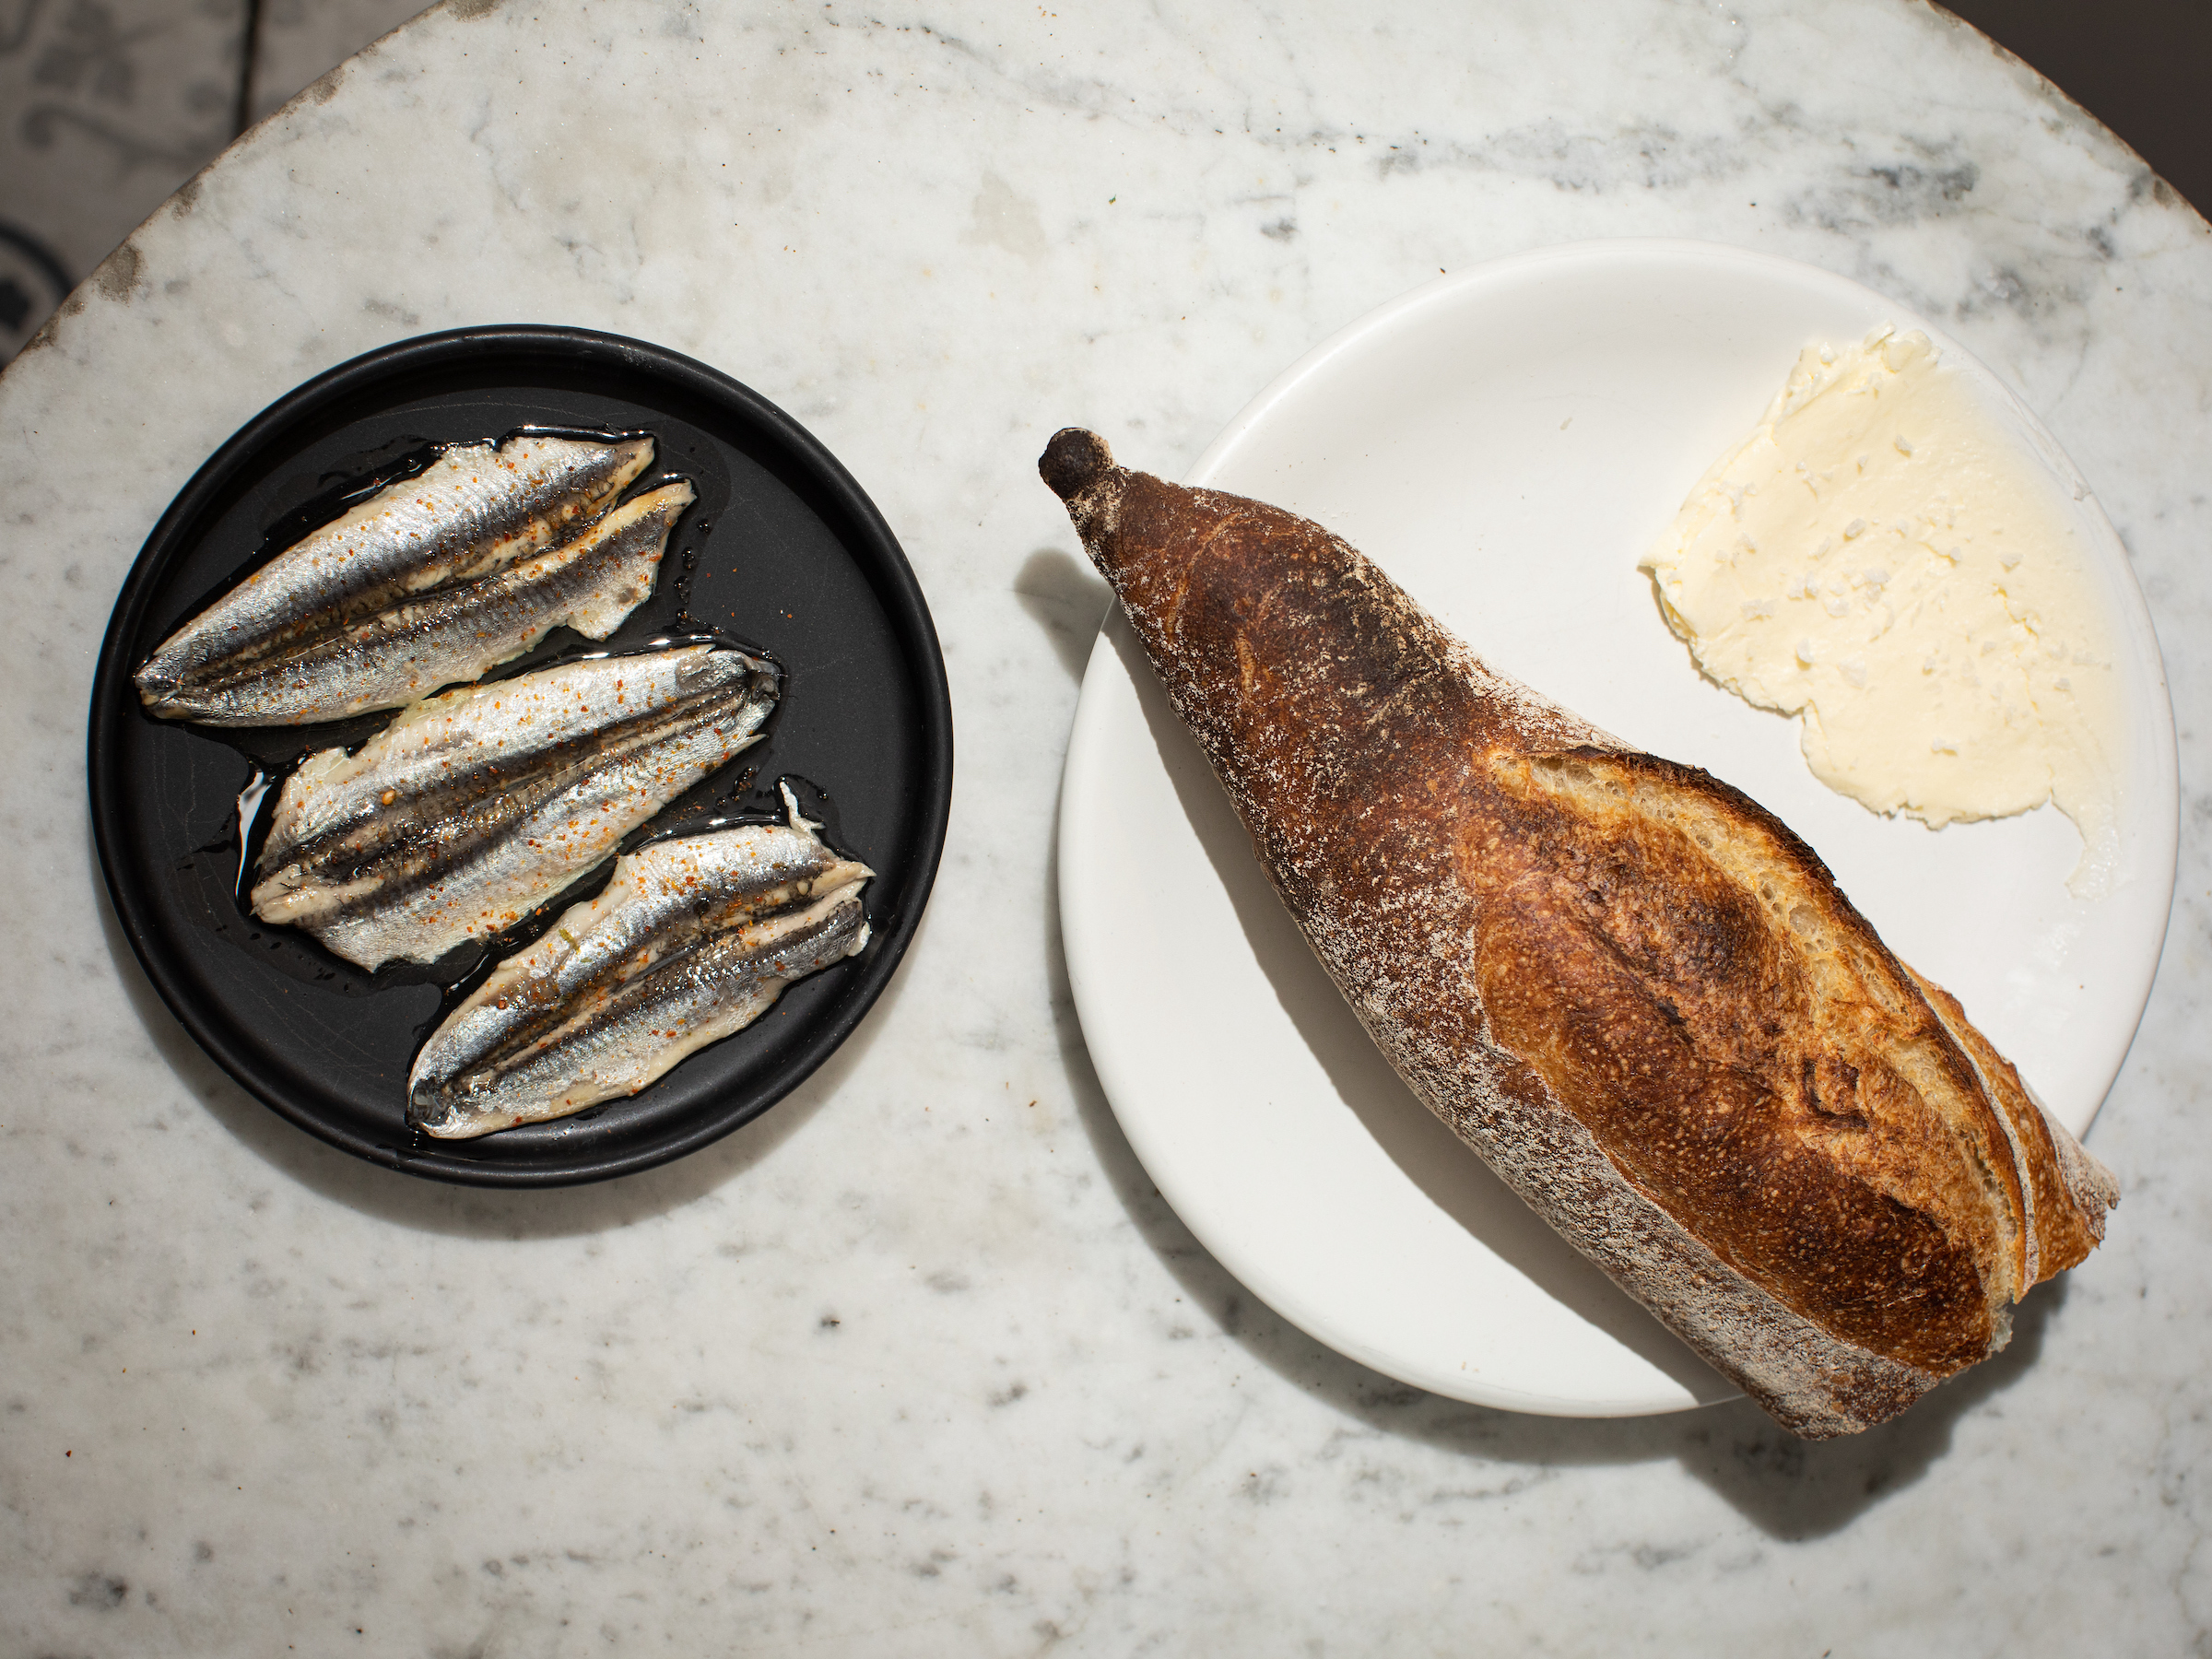 An overhead photograph of two plates, one with three fish filets and another with a baguette and smear of butter